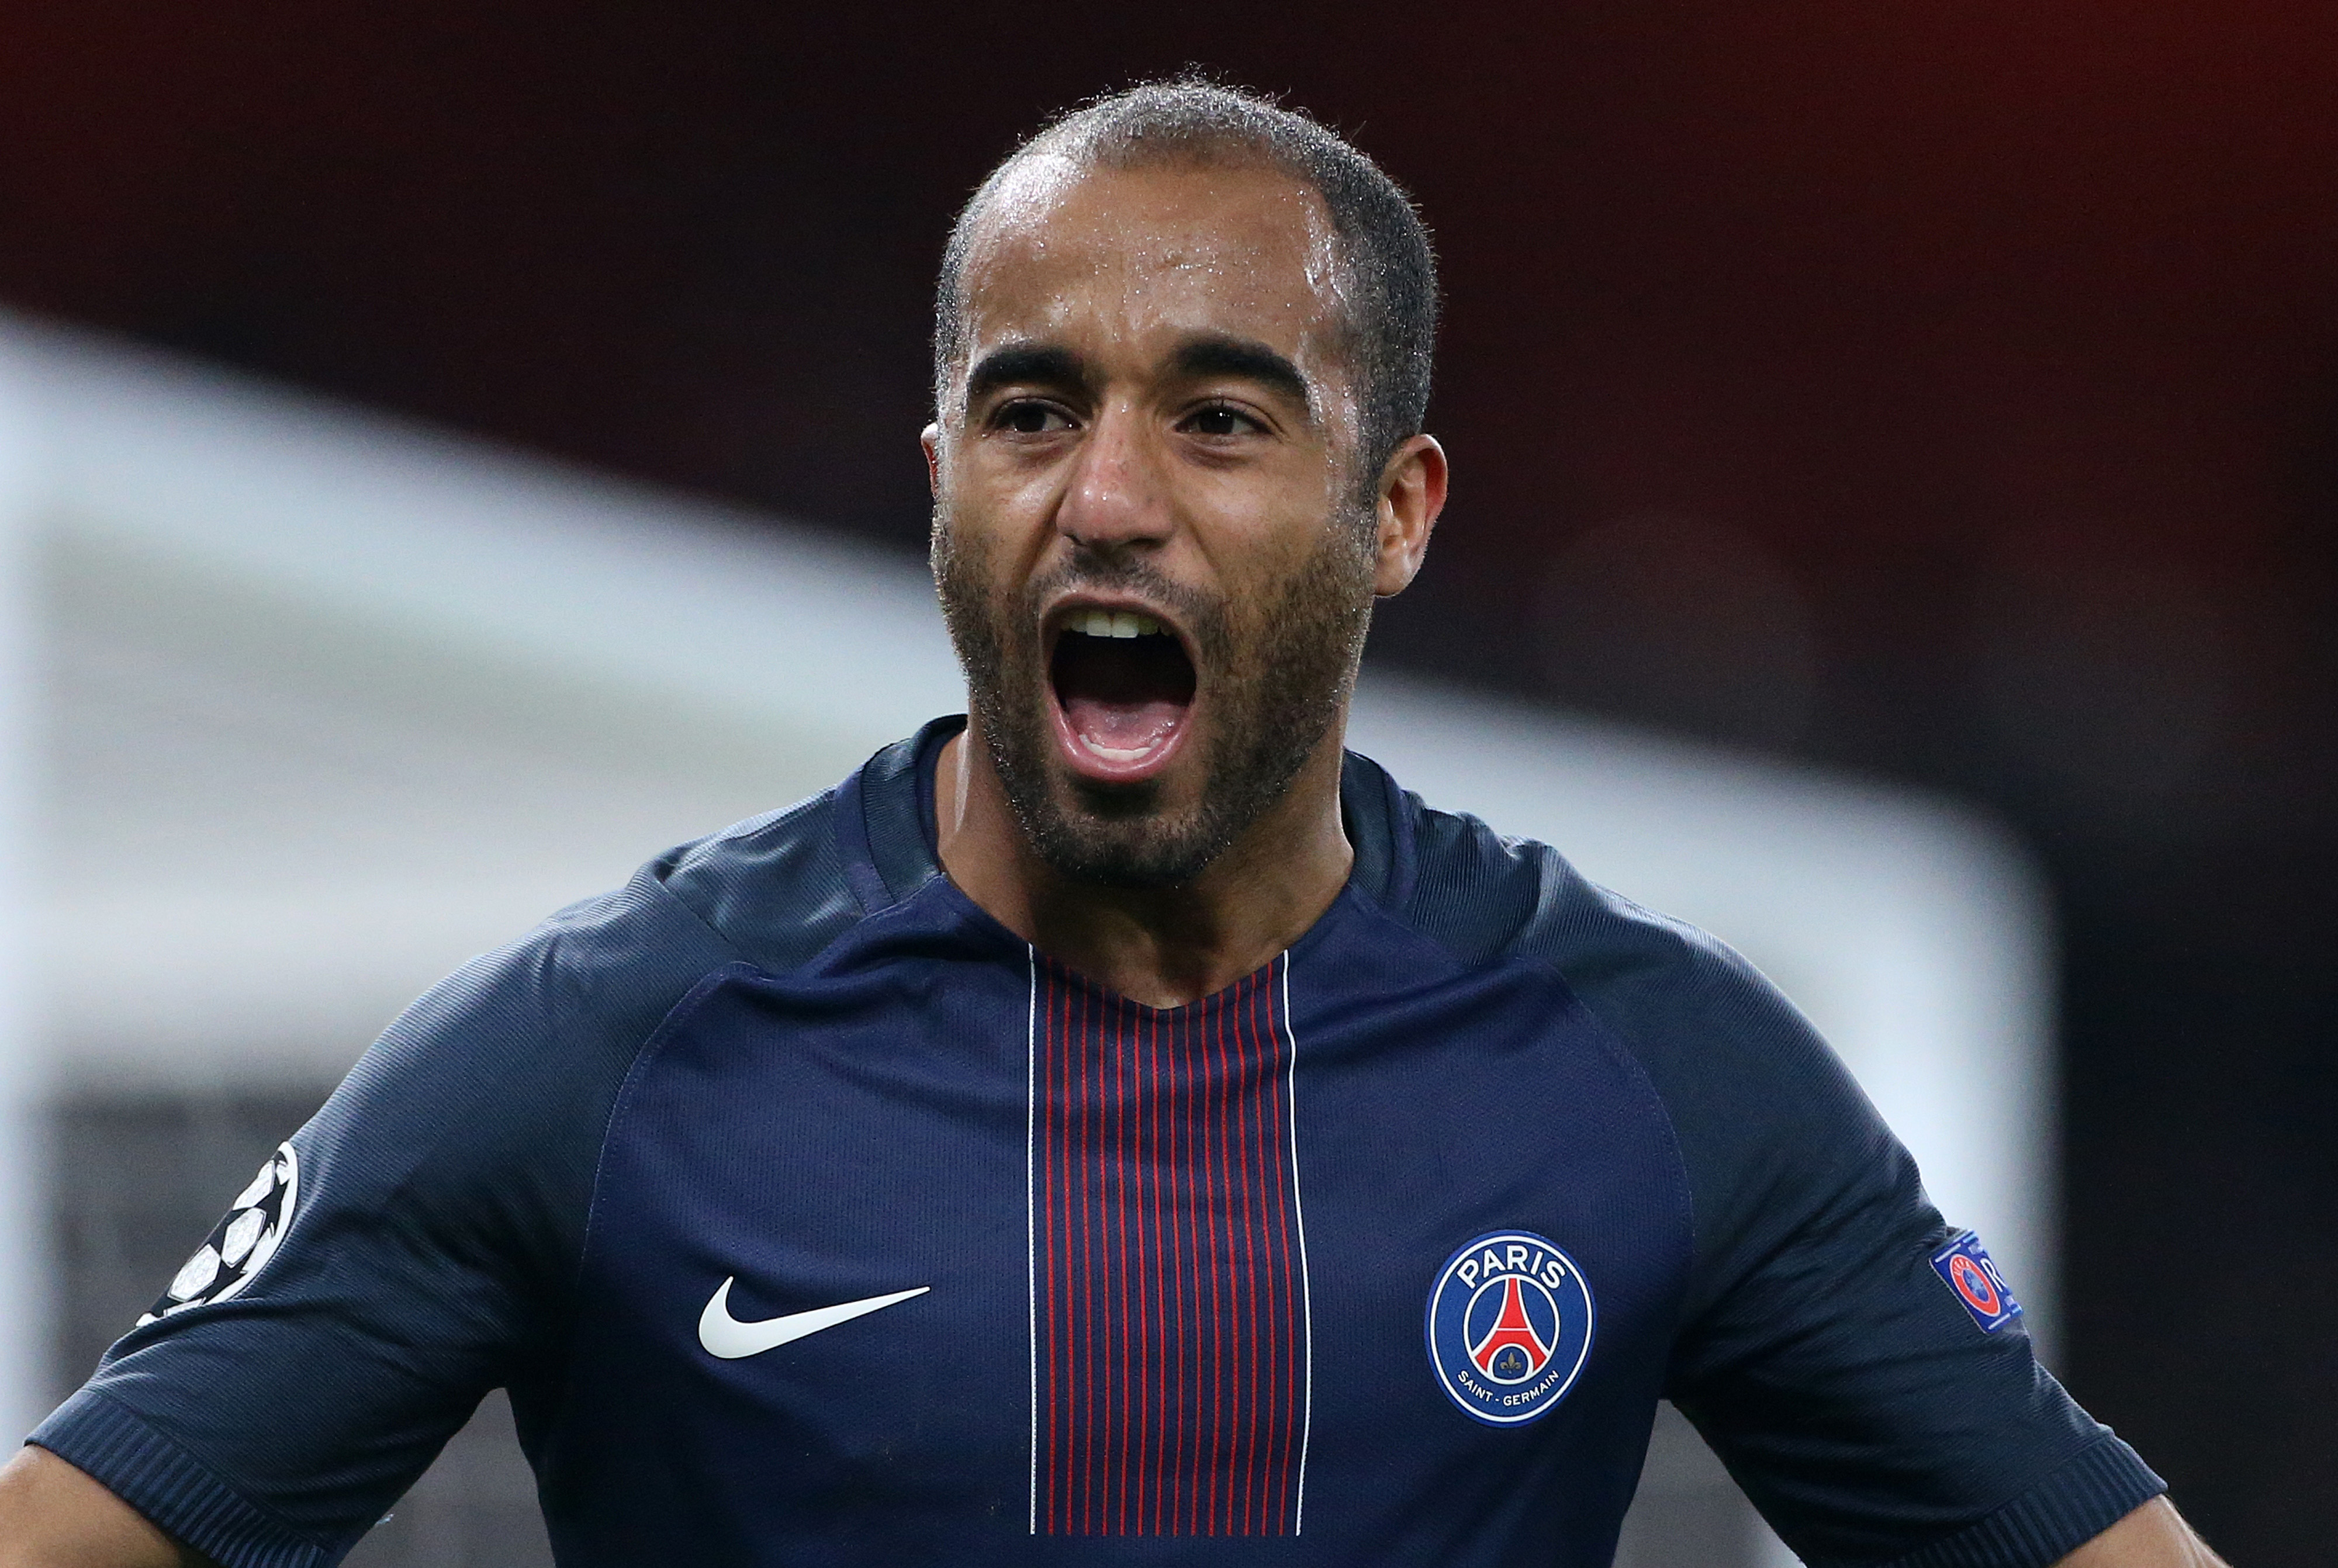 LONDON, ENGLAND - NOVEMBER 23: Lucas Moura of PSG celebrates his goal during the UEFA Champions League match between Arsenal FC and Paris Saint-Germain at Emirates Stadium on November 23, 2016 in London, England. (Photo by Jean Catuffe/Getty Images)